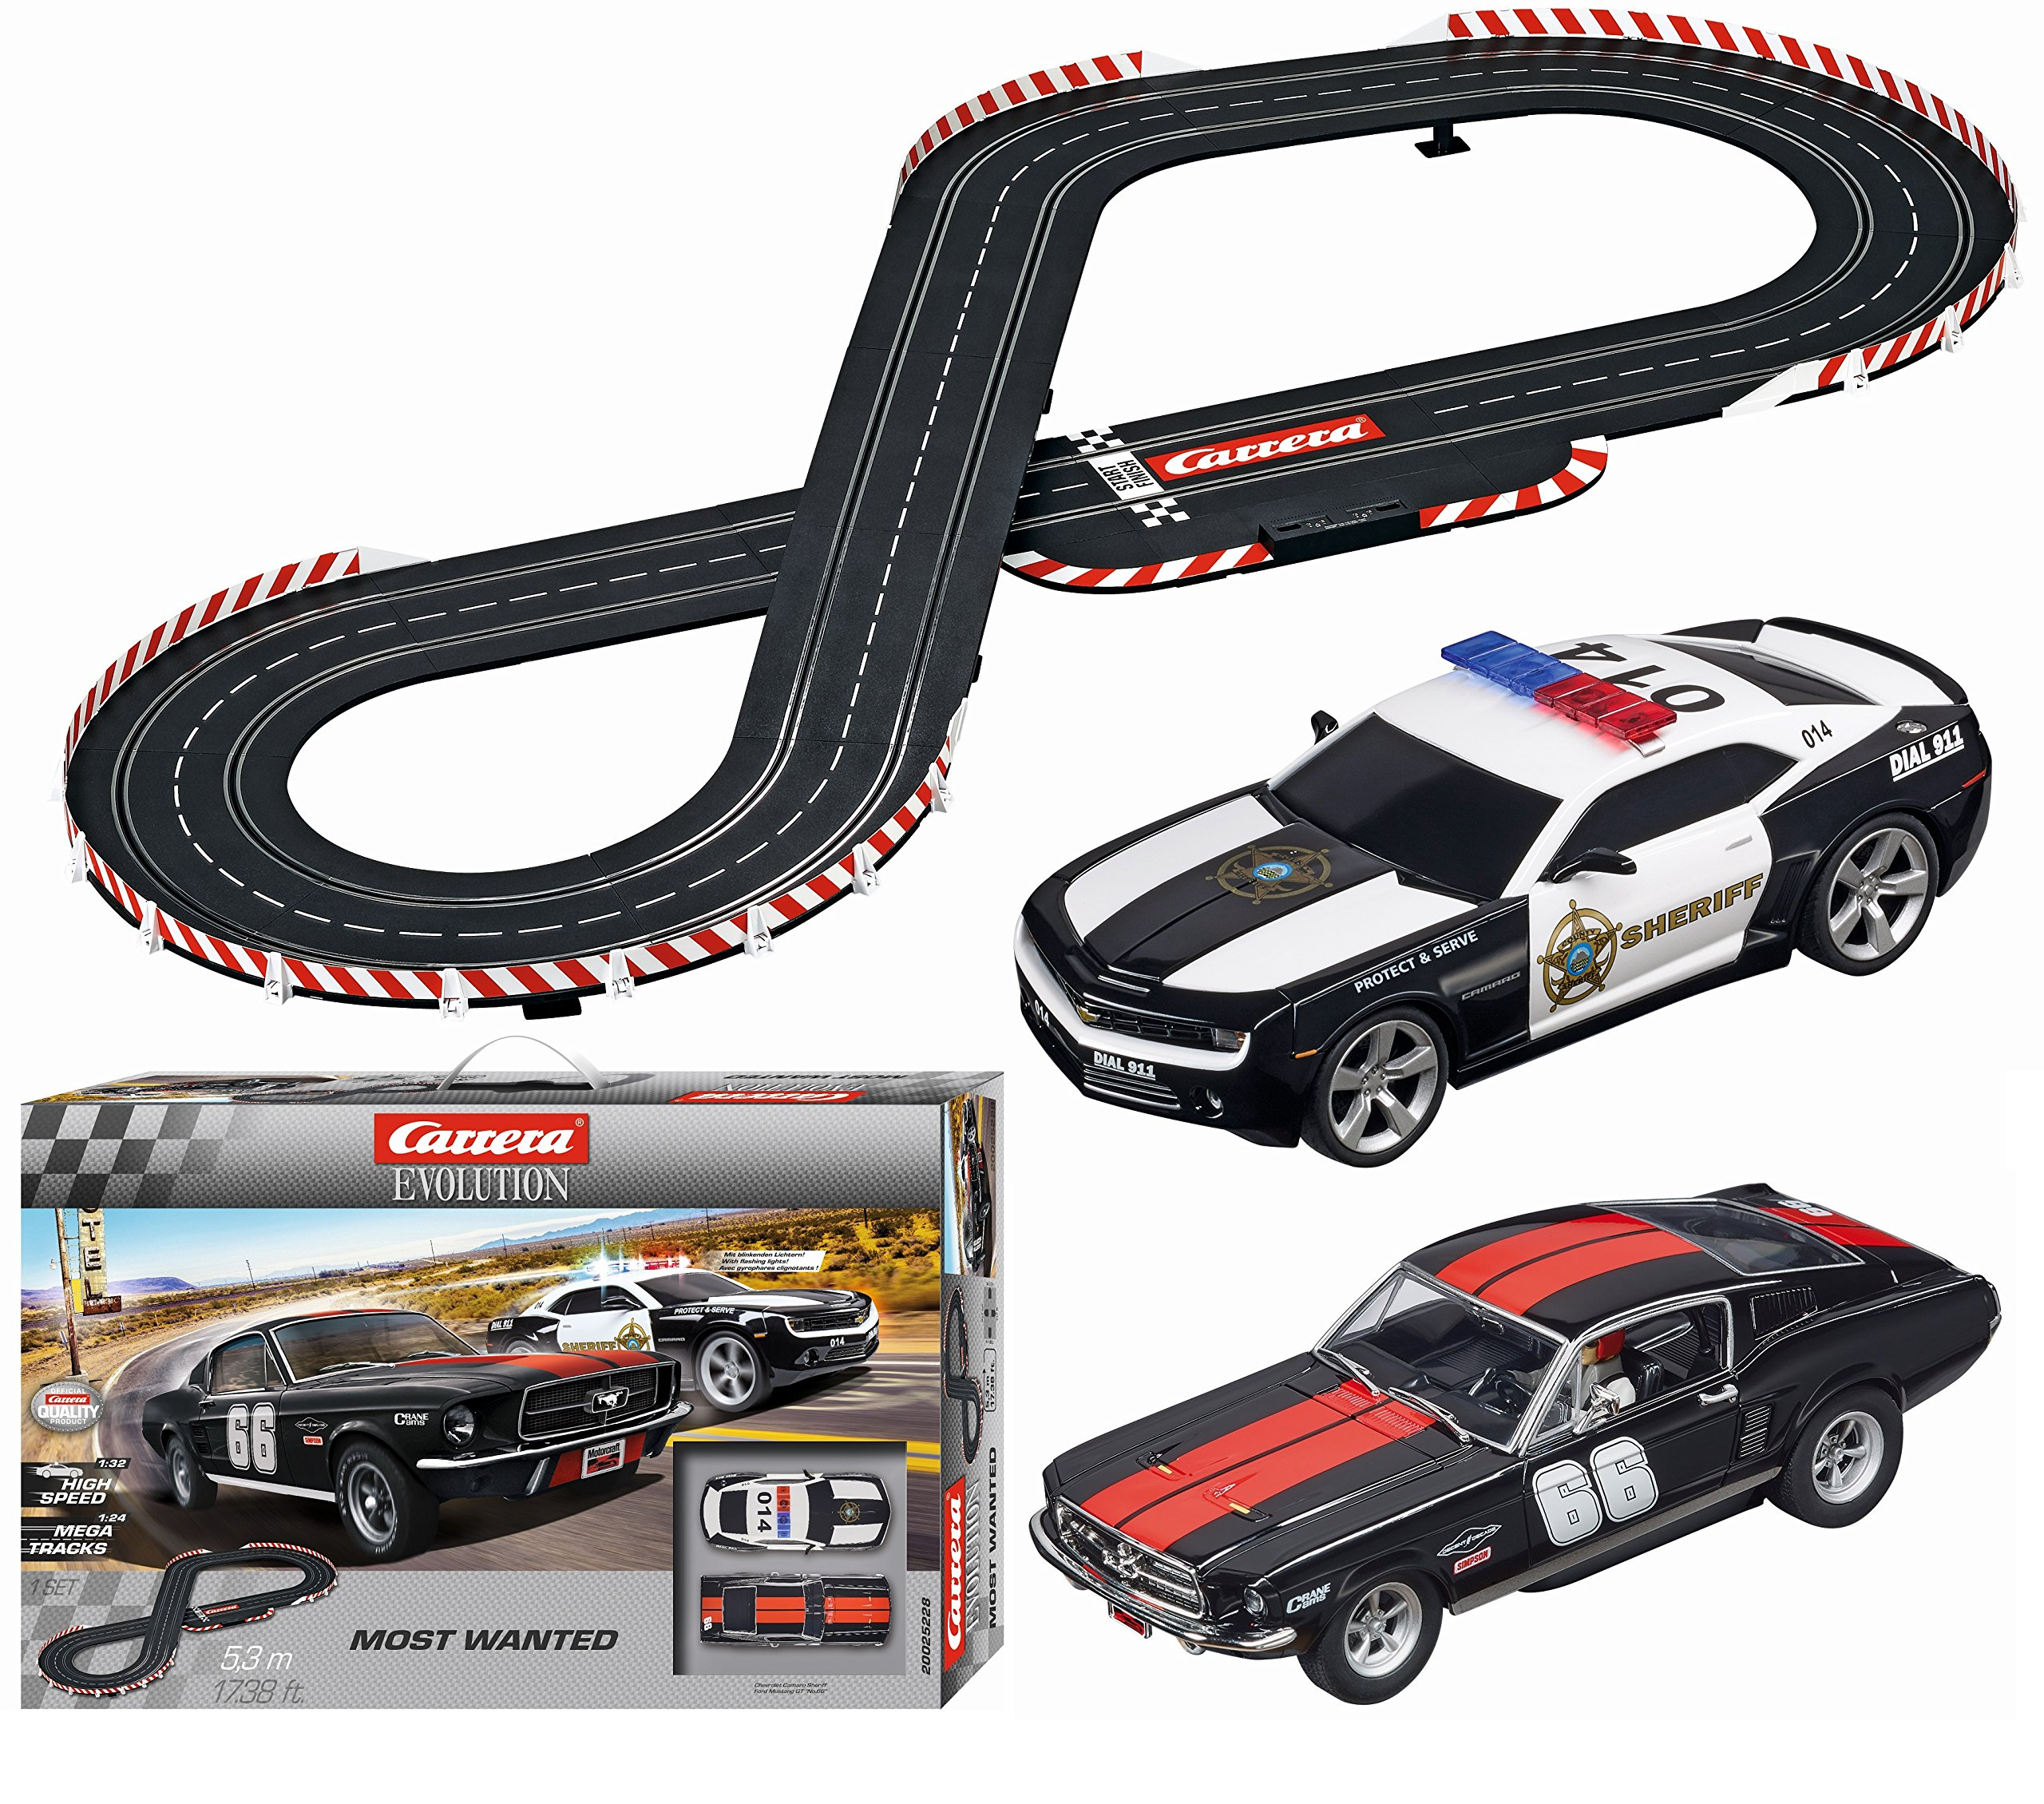 Carrera Evolution 20025228 Ford/Cheverolet Most Wanted Slot Set, 1:32 Scale